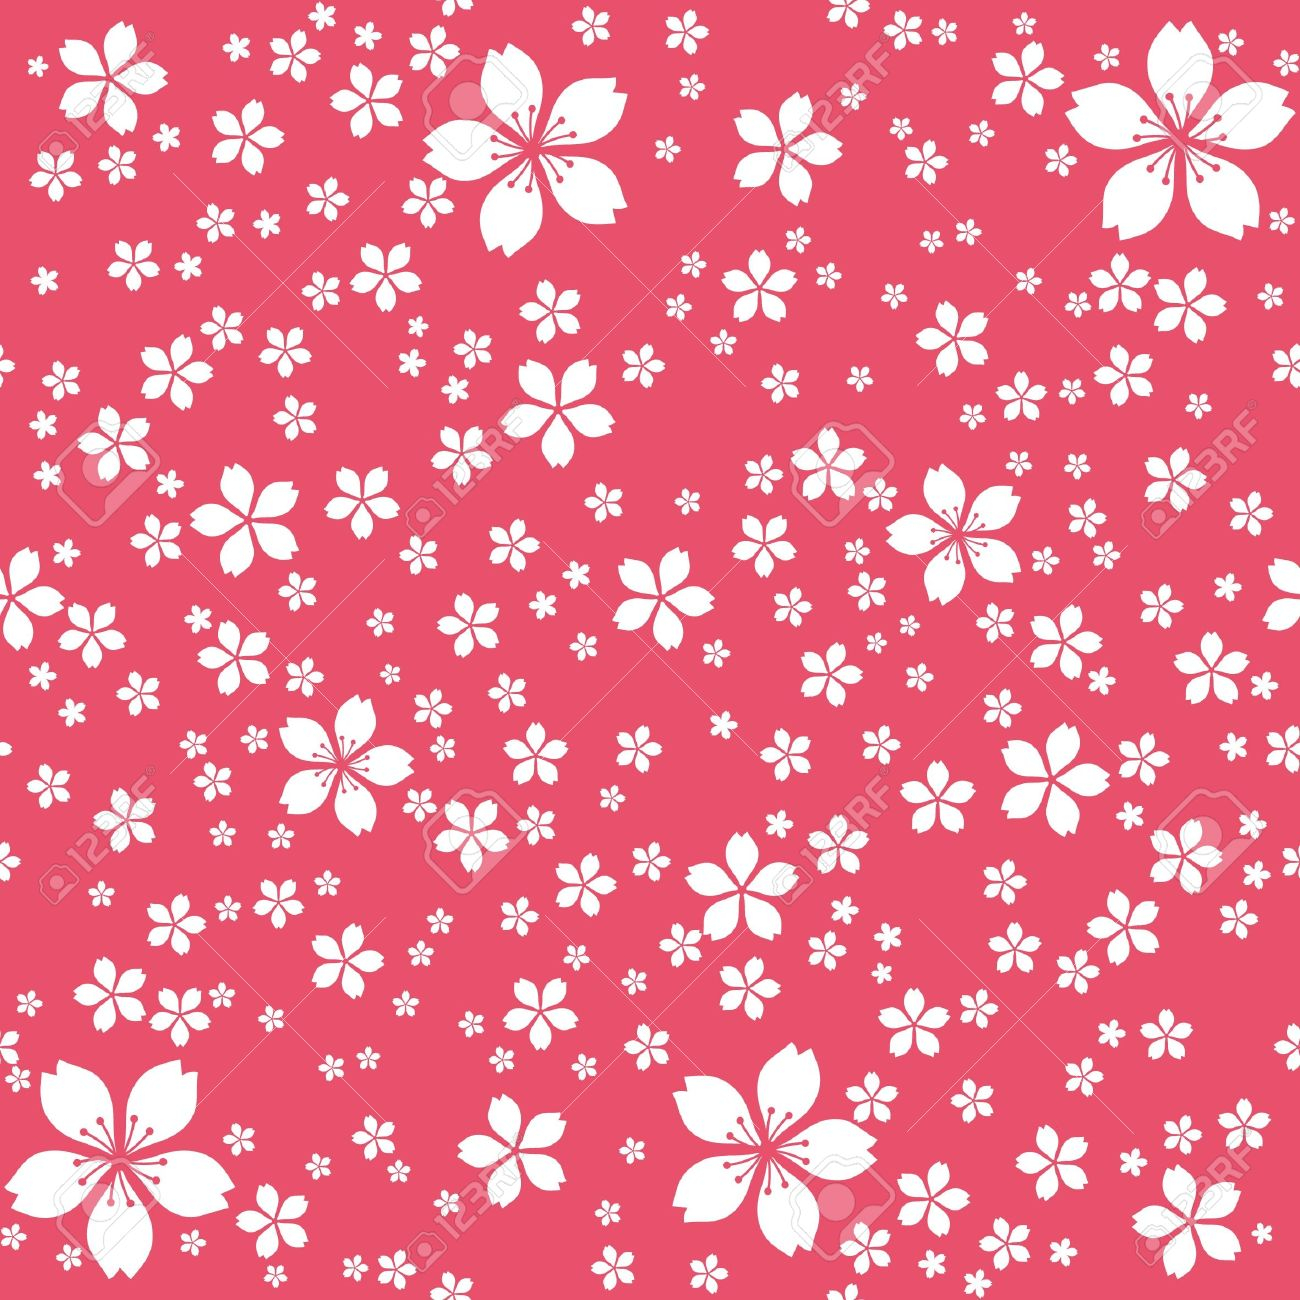 cute floral seamless wallpaper white flowers at red background